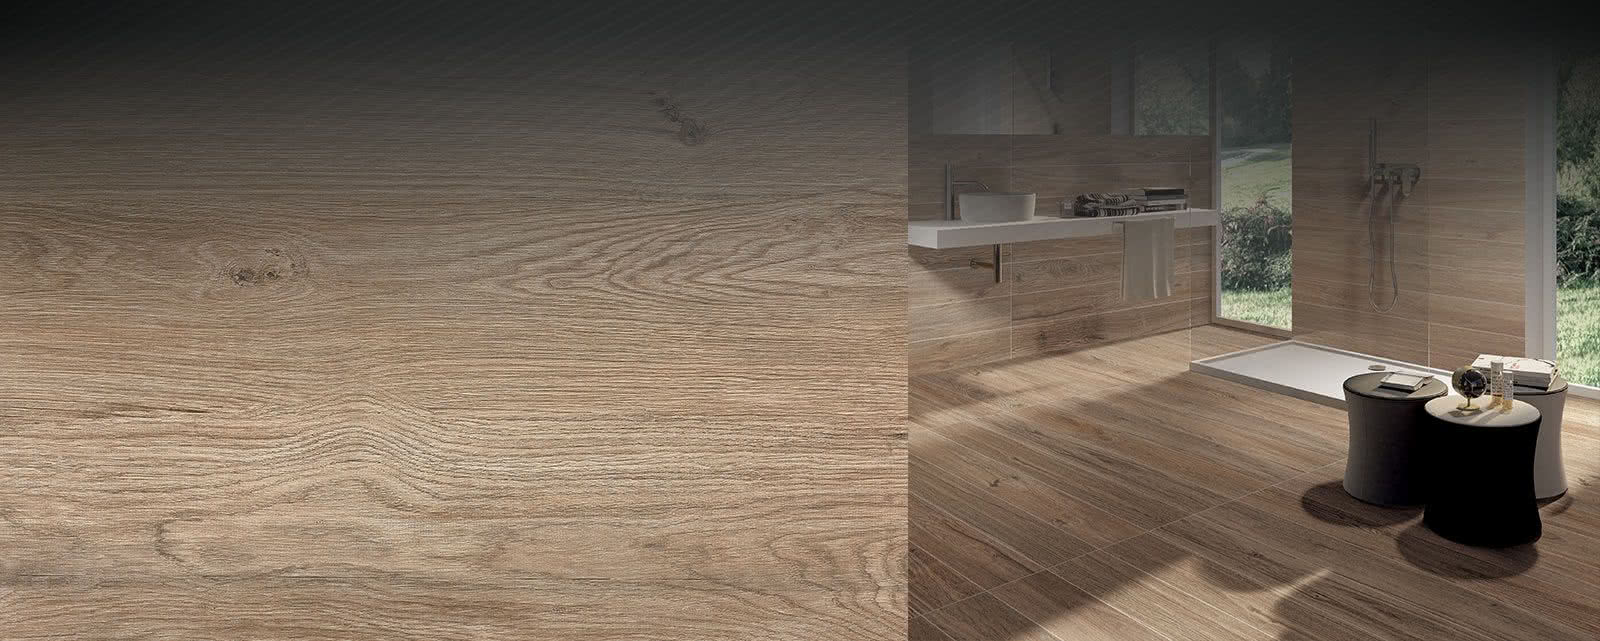 Buymytiles importer of high quality ceramic tiles in perth floor tiles wood look flooring natural timber look with all the benefits of tiles dailygadgetfo Choice Image